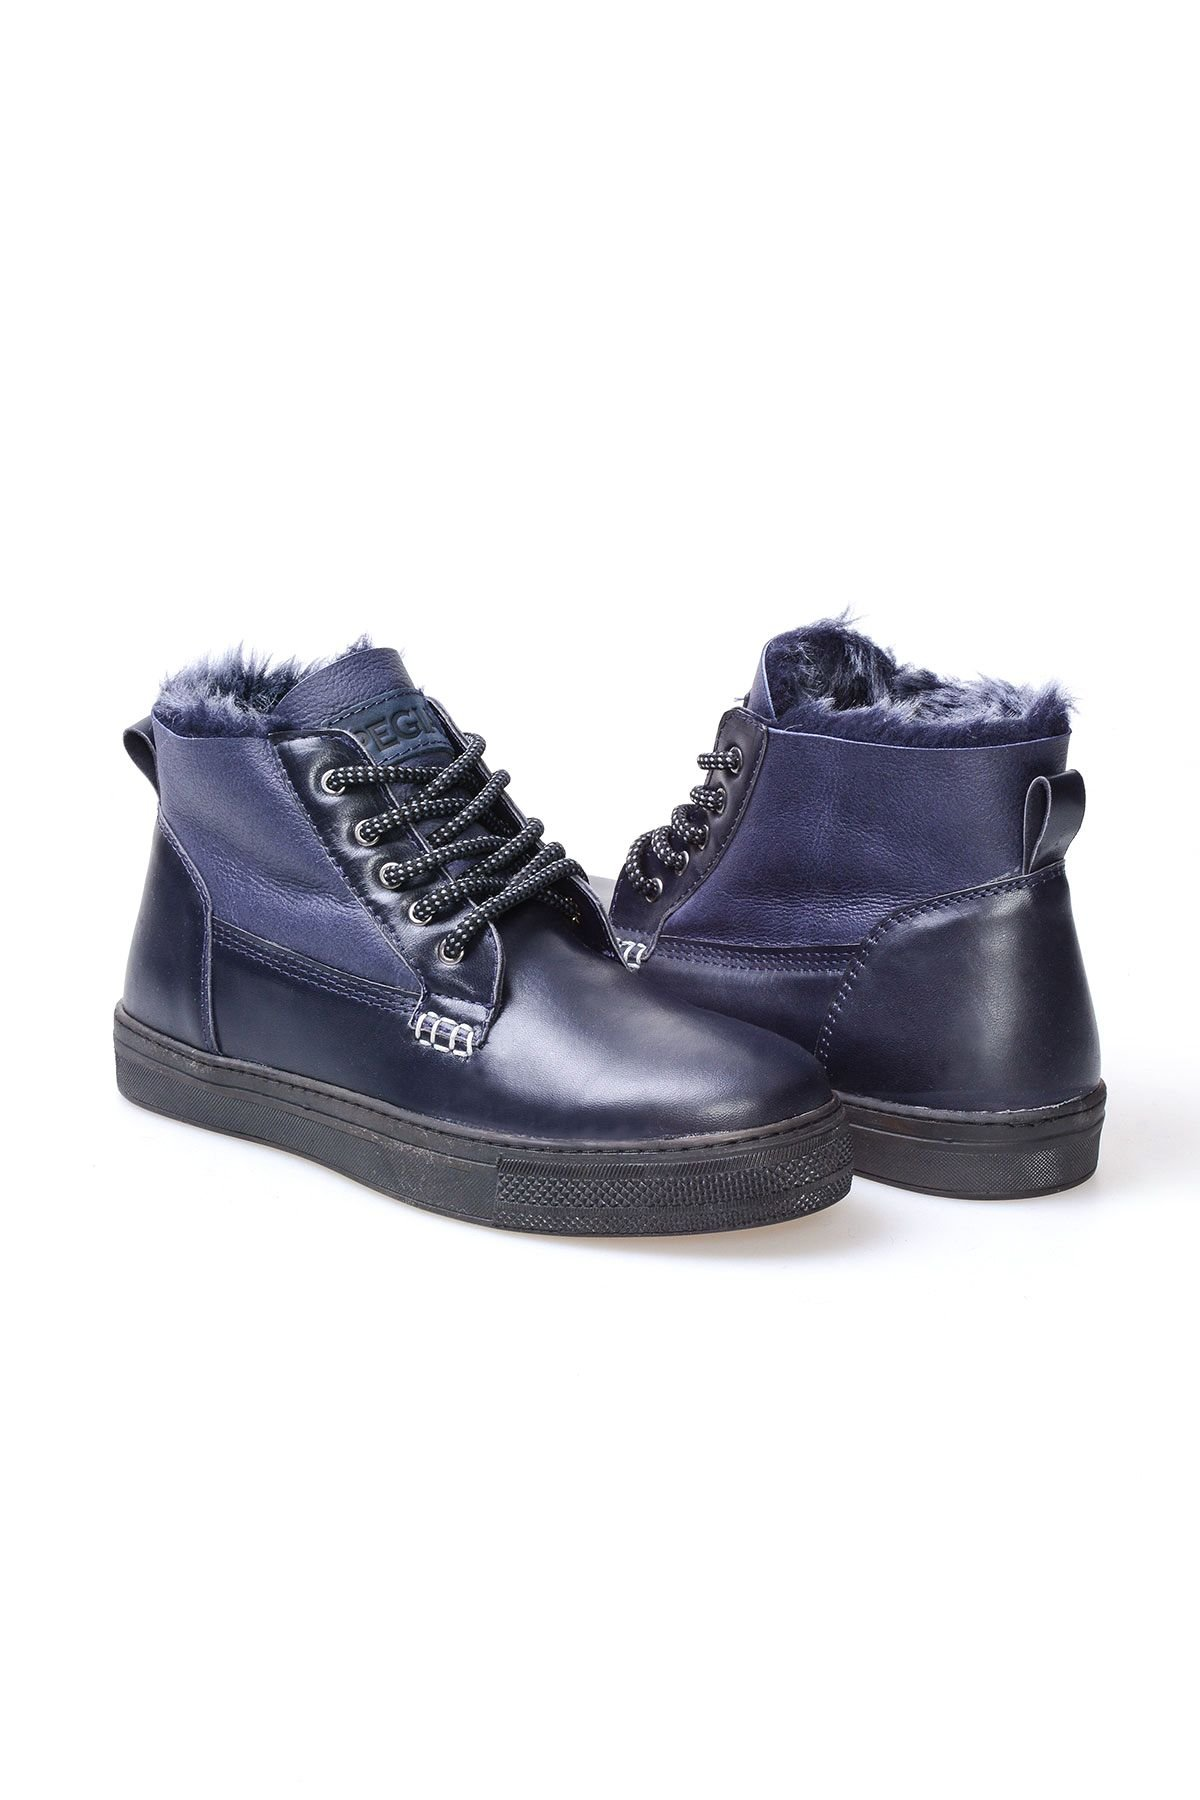 Pegia Genuine Leather & Sheepskin Lace-up Men's Boots 205003 Navy blue